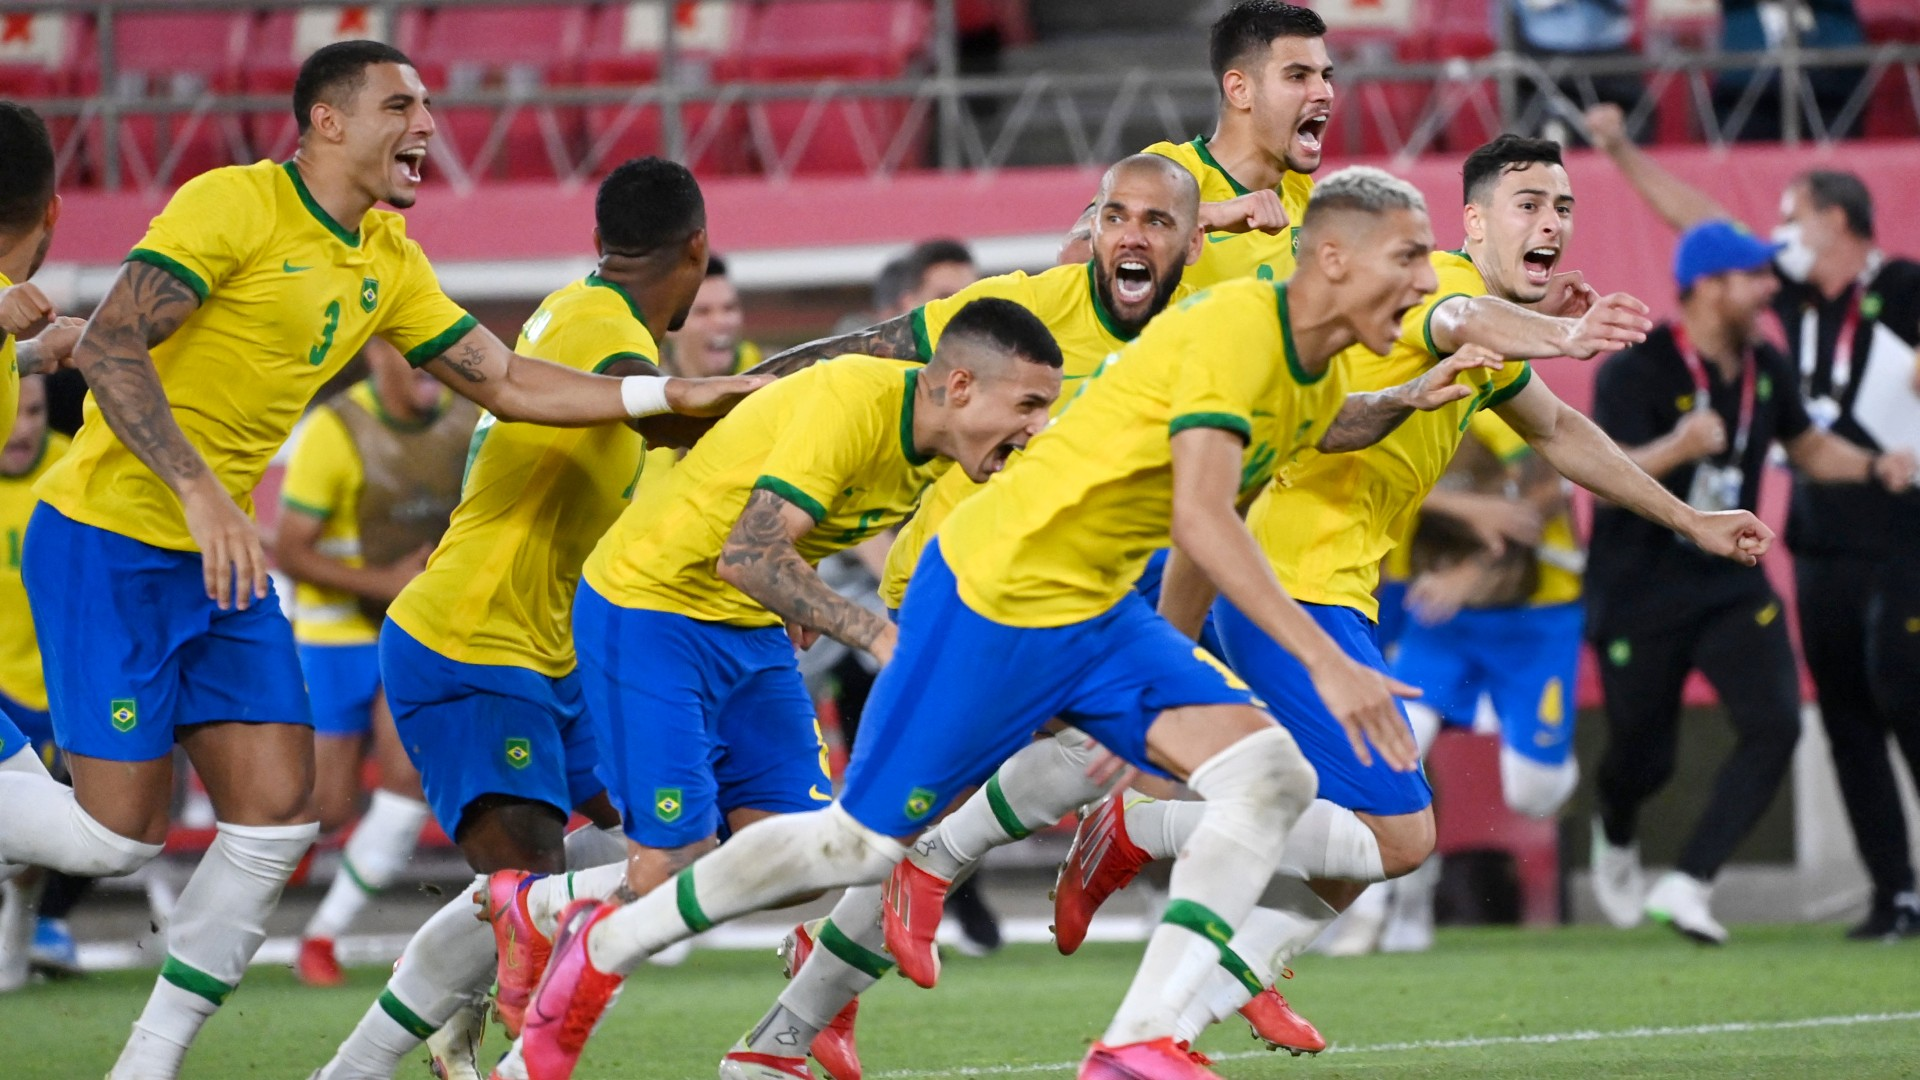 Olympic soccer schedule 2021: Complete dates, times, TV channels to watch men's tournament in USA